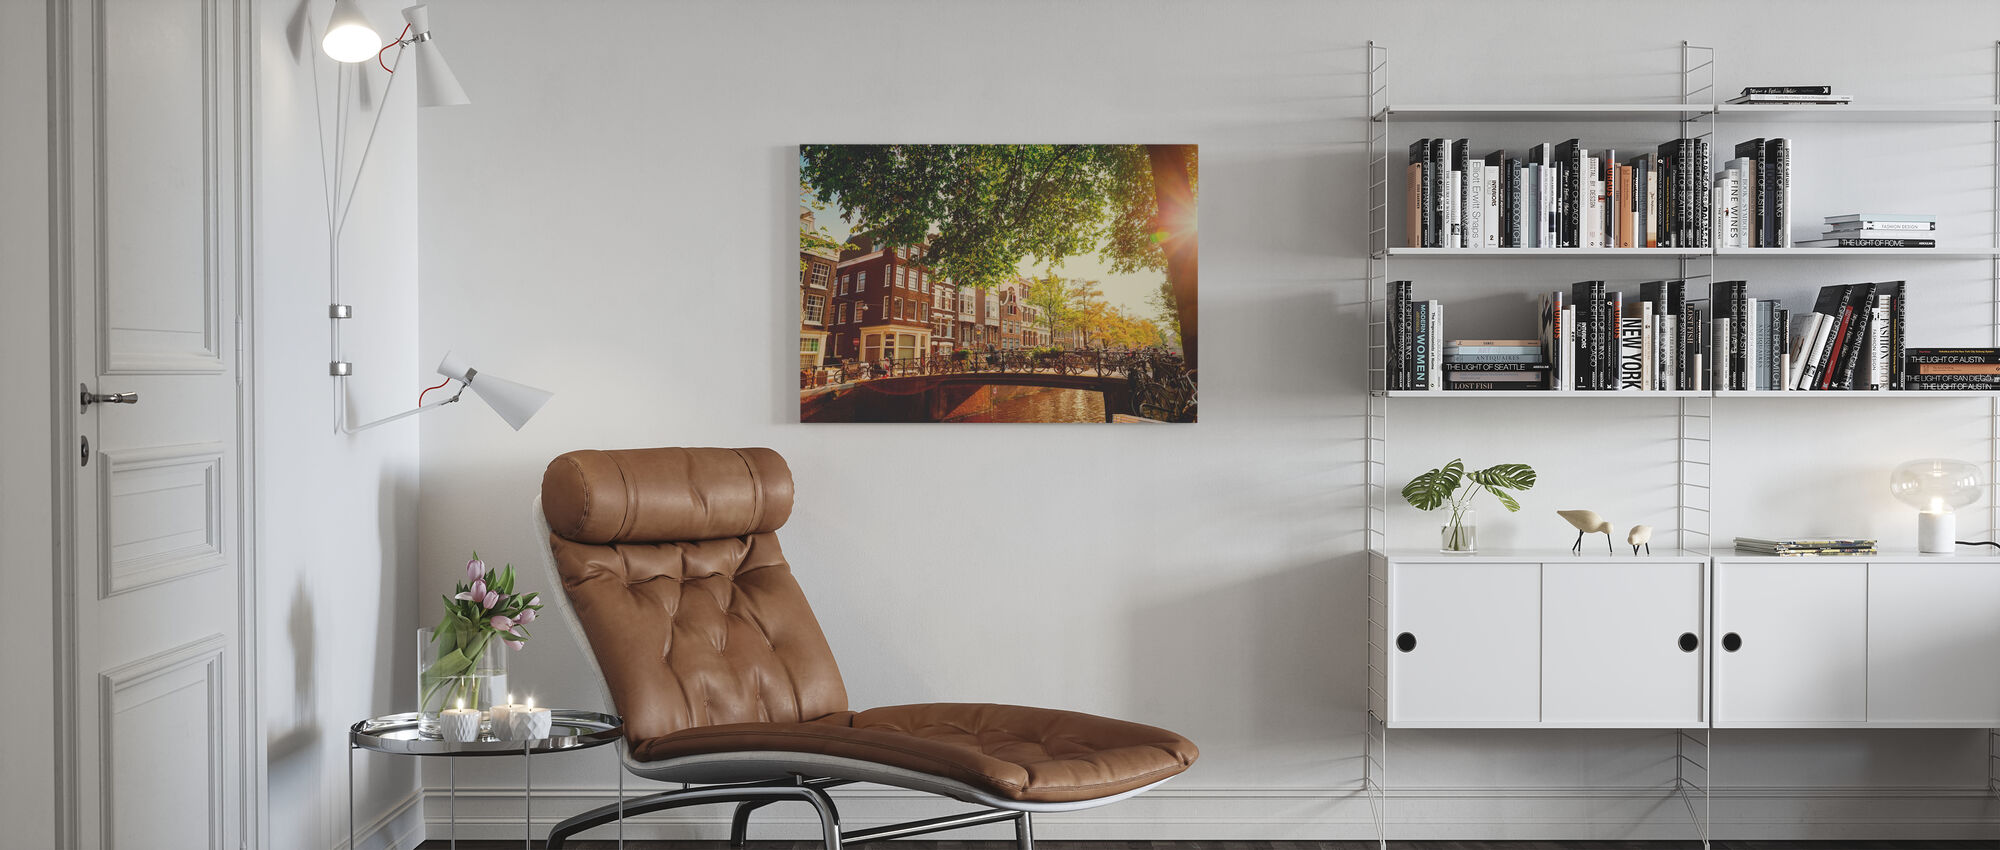 Bridge in Amsterdam - Canvas print - Living Room